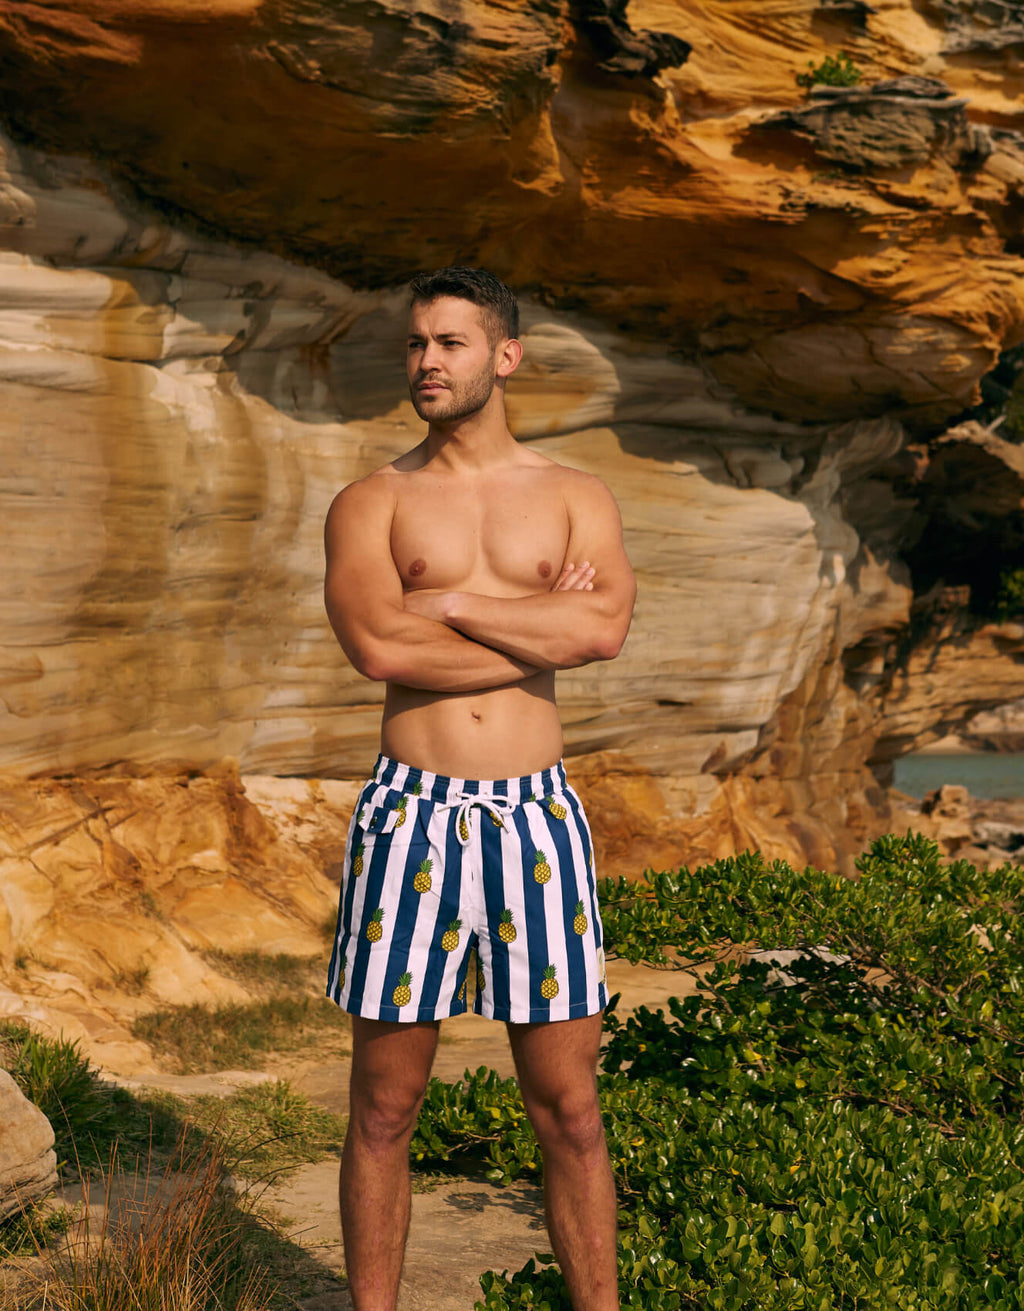 Men's Swim Shorts - Pineapples Navy/White Stripes